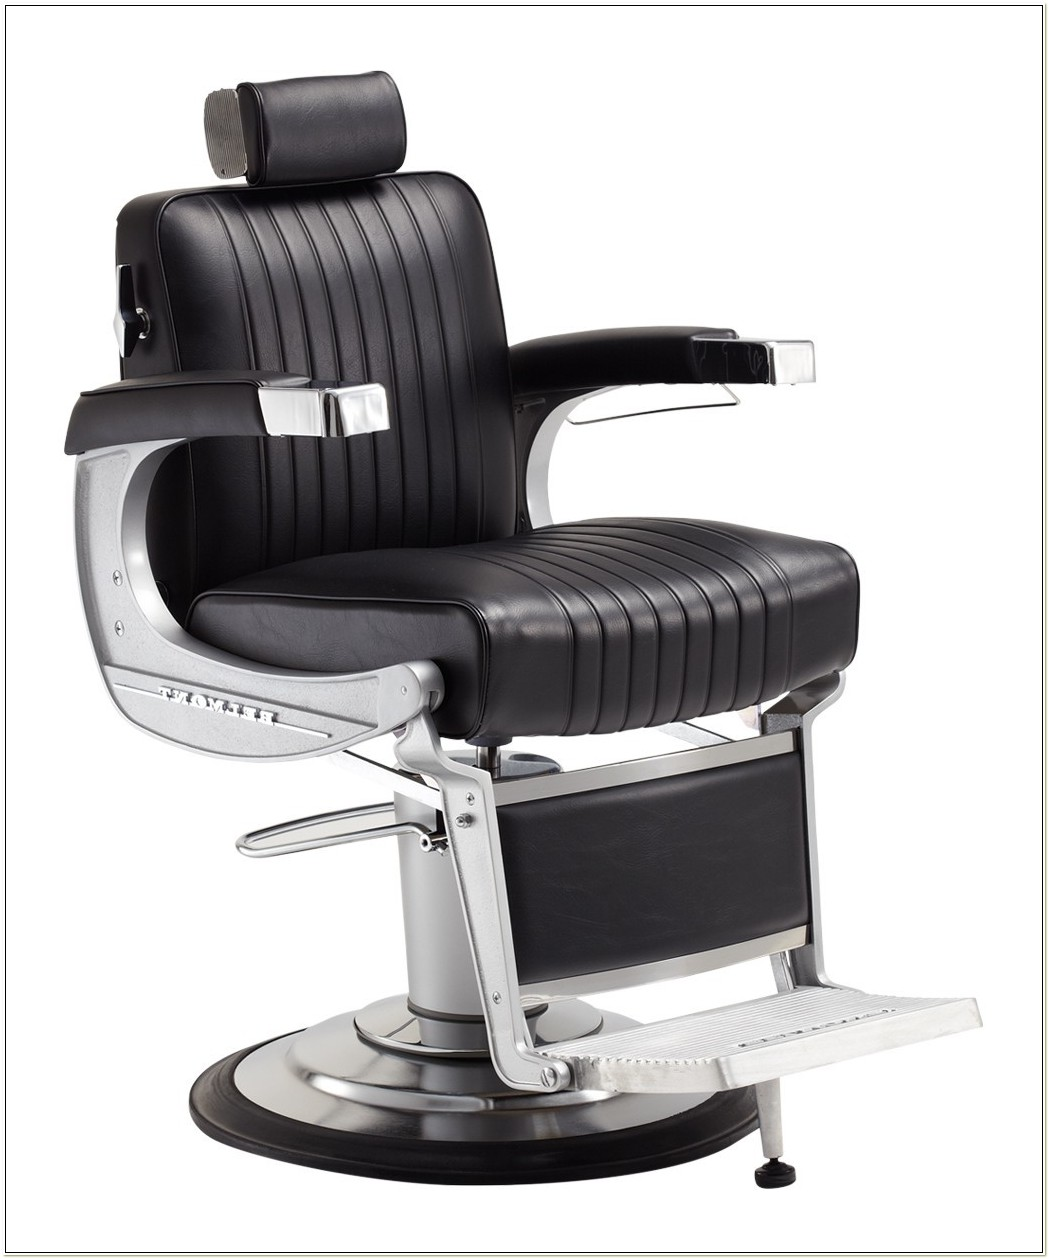 Takara Belmont Barber Chairs